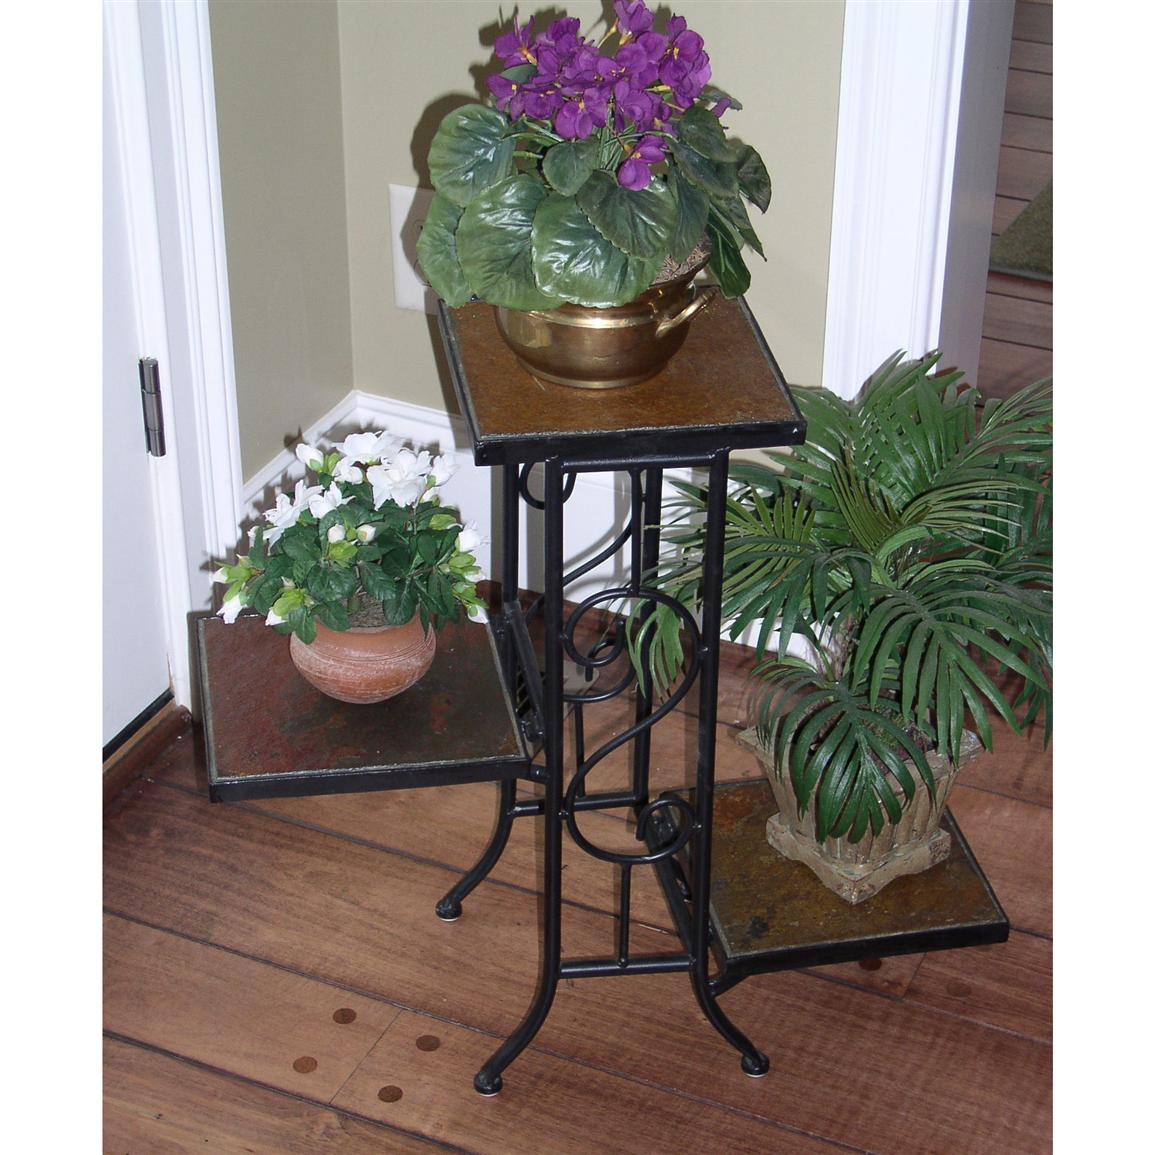 4D Concepts 3-tier Plant Stand with Slate Top